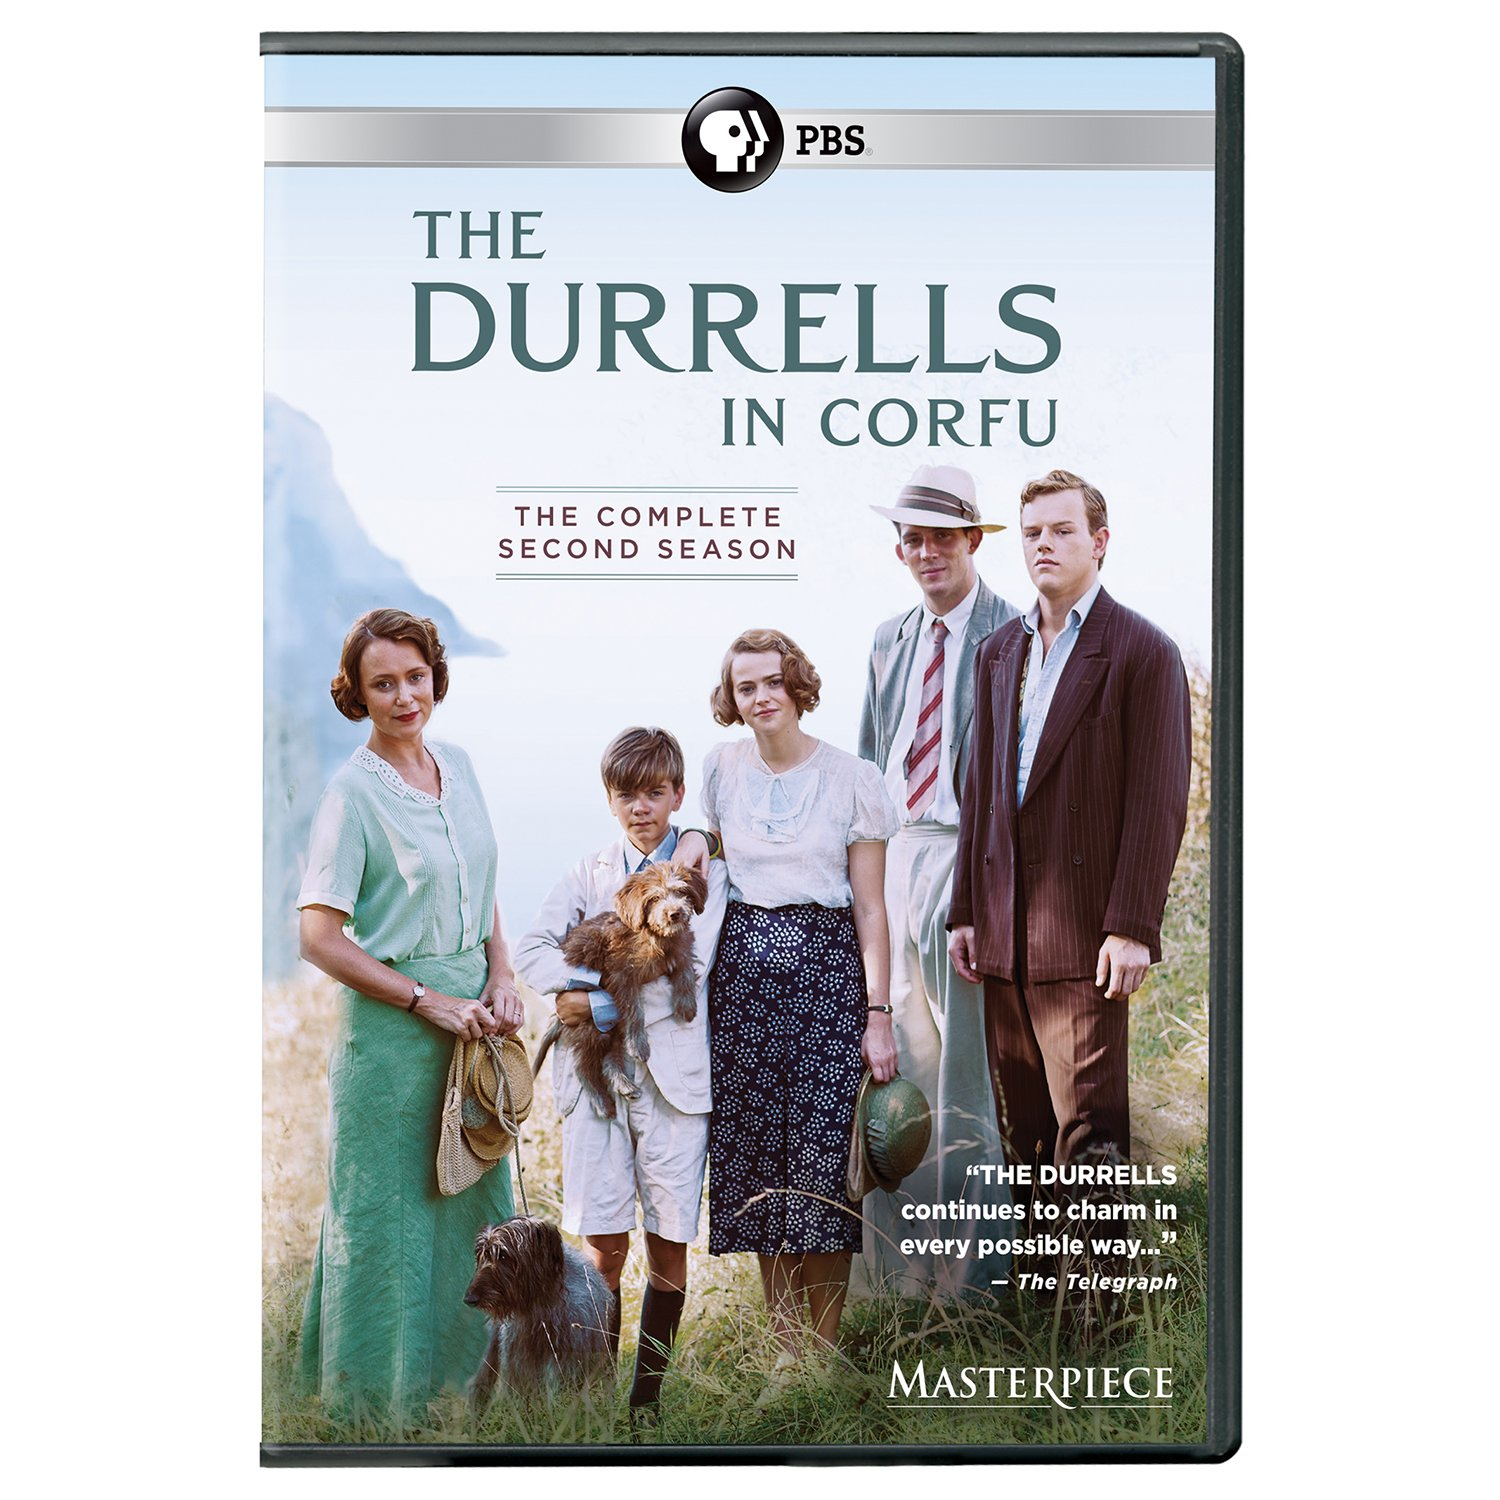 The Durrells in Corfu: Season 2 (UK Edition)